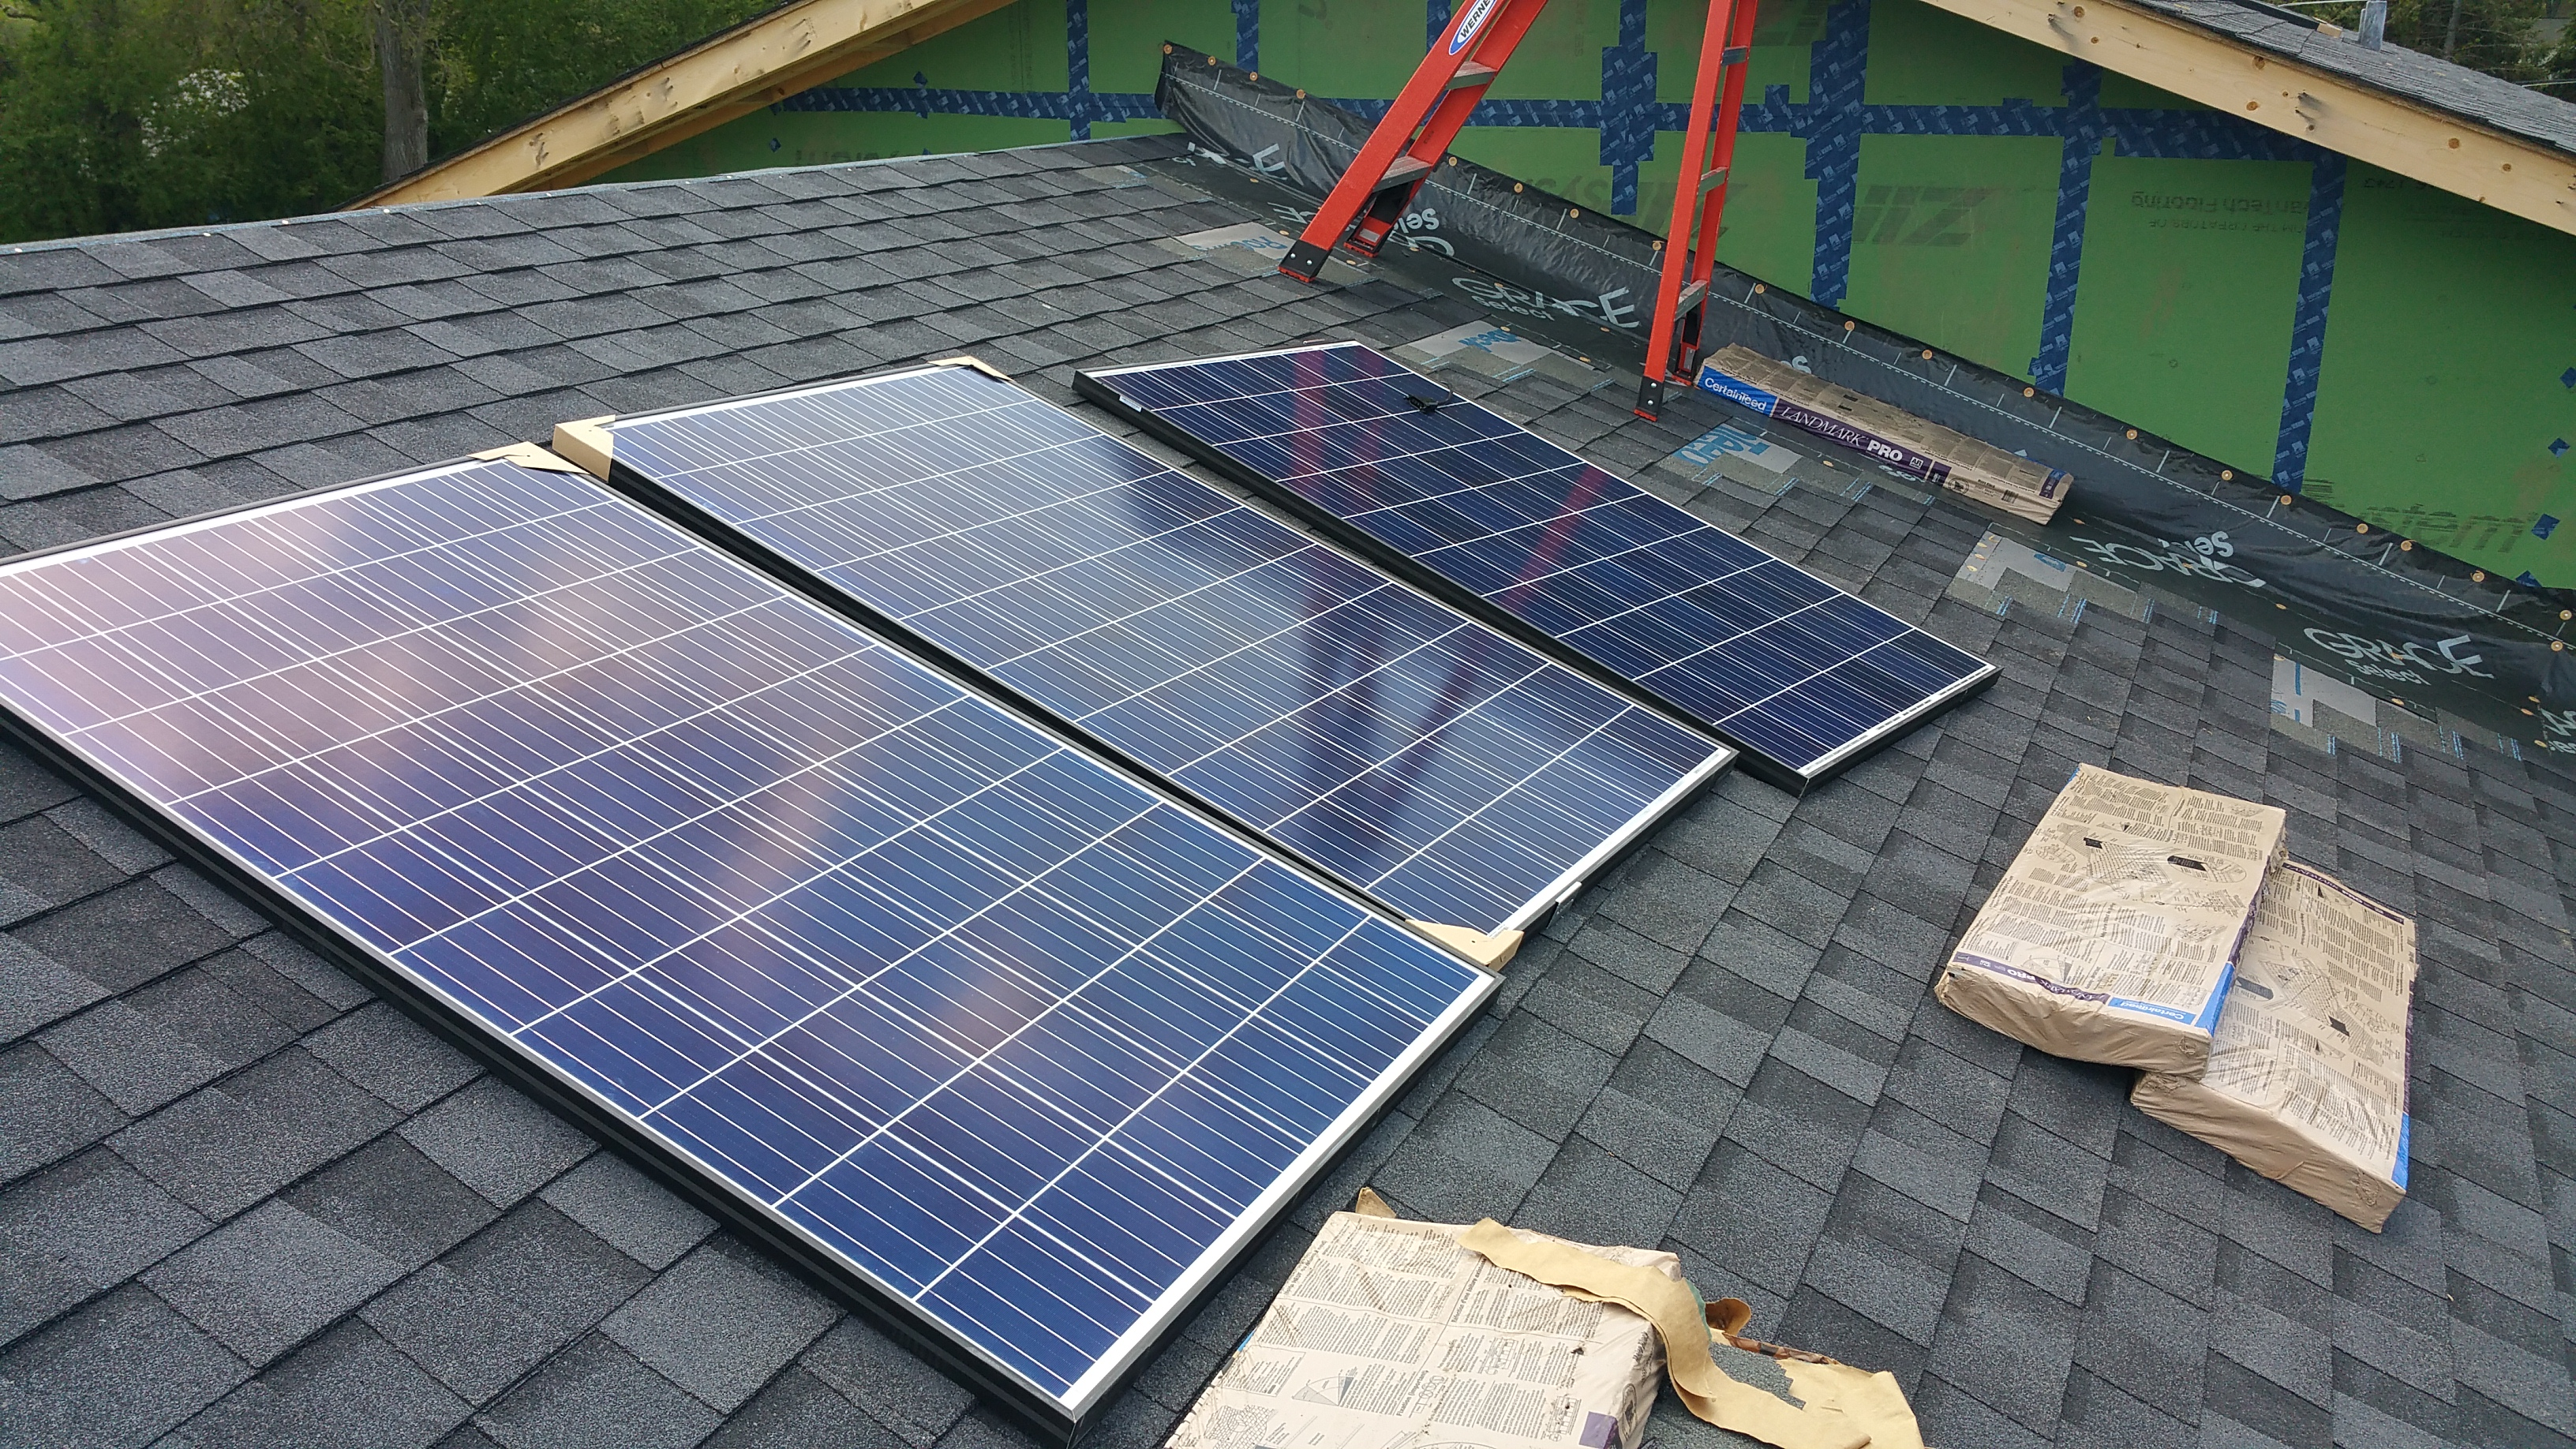 laying out the solar panels pre-install